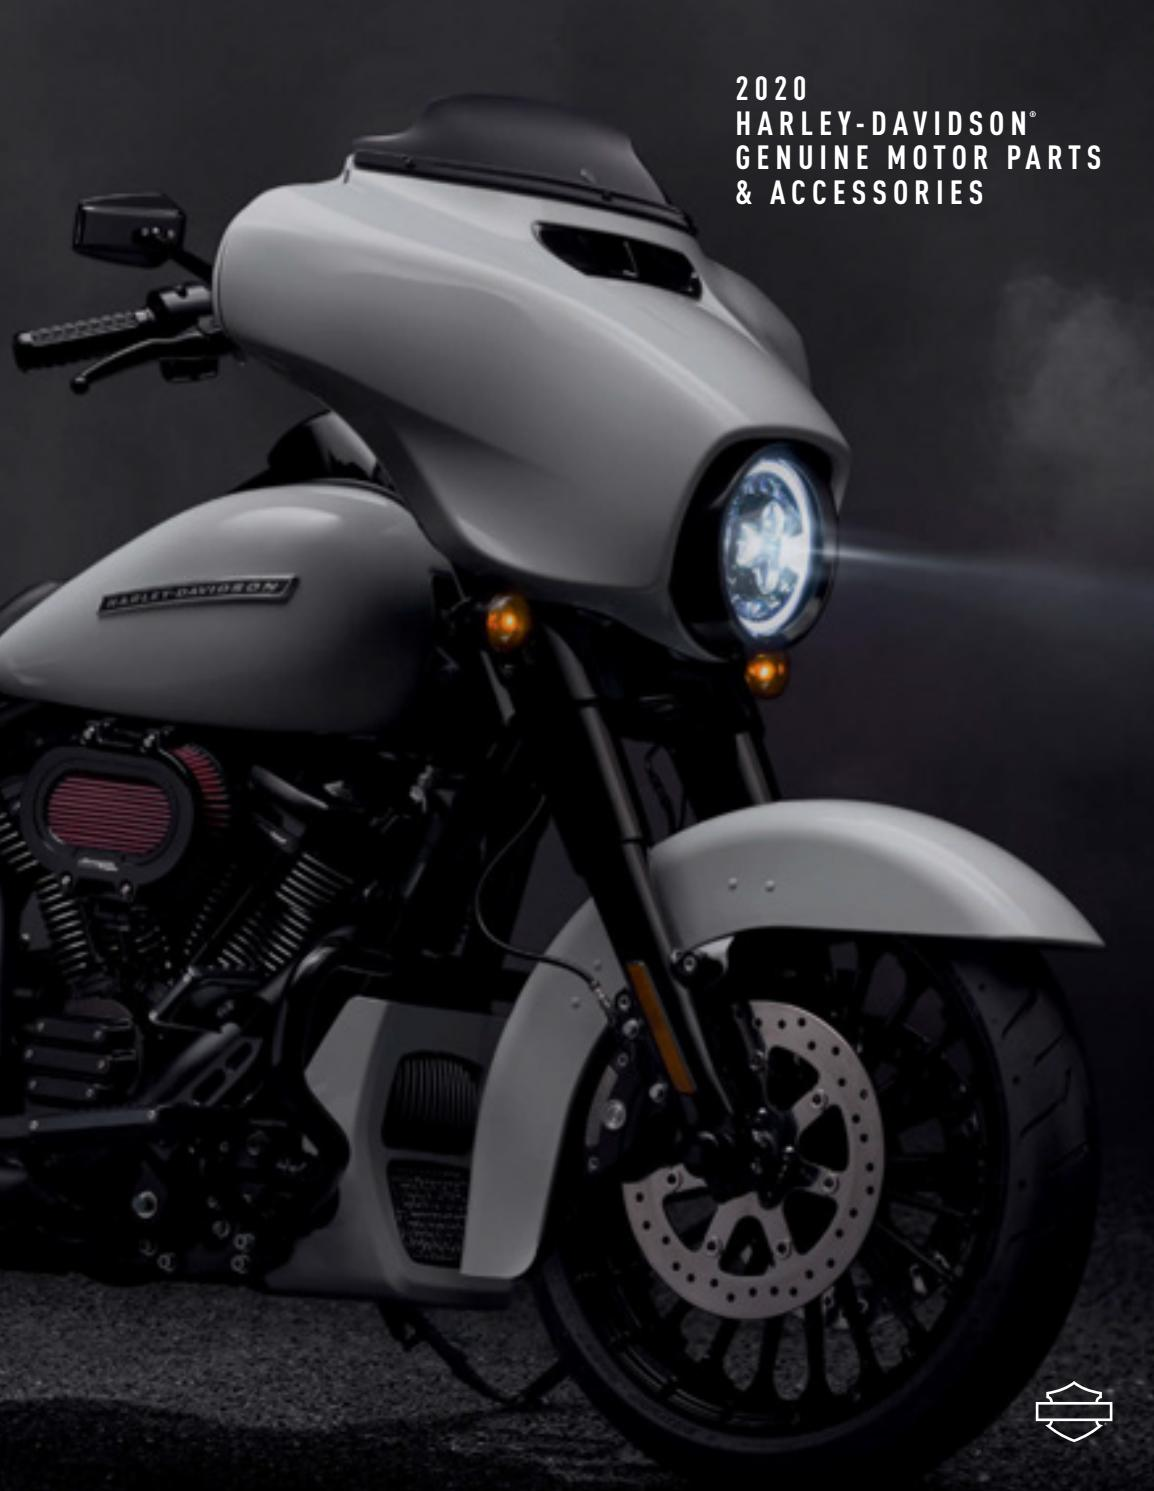 Harley Davidson My20 Parts Accessories Catalogue By Motorcycle Holdings Issuu